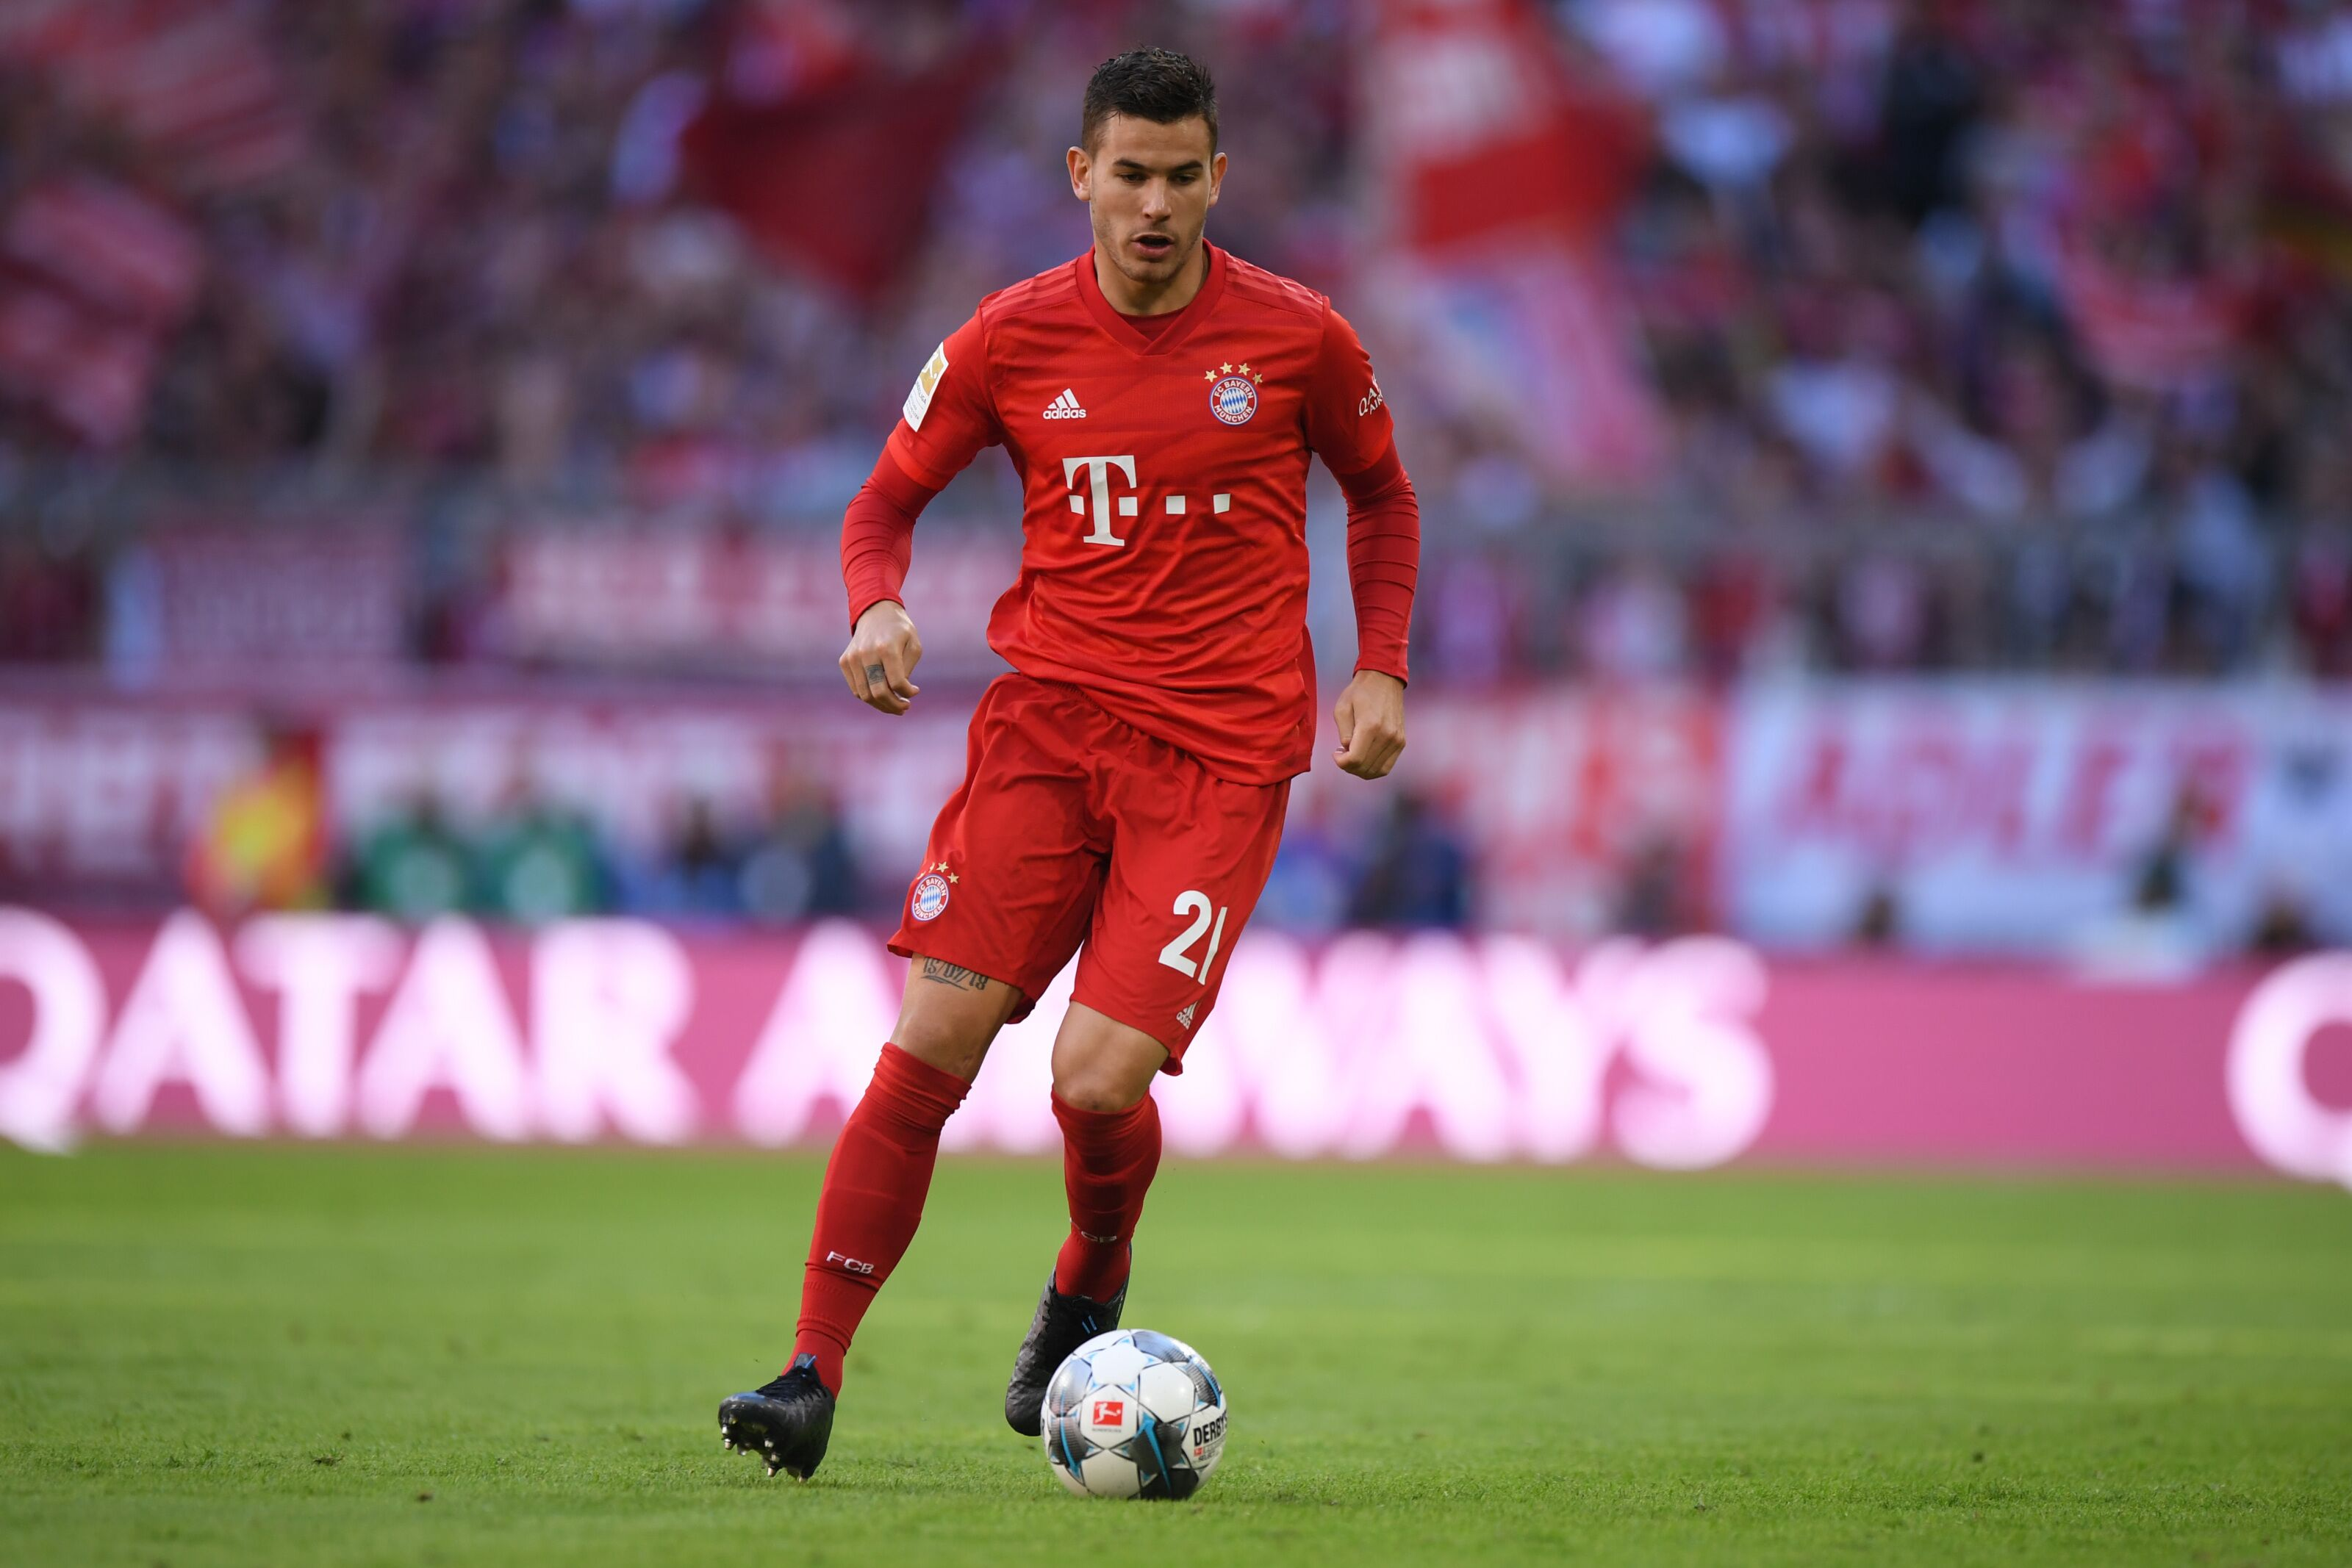 Bayern Munich was the perfect move for Lucas Hernandez